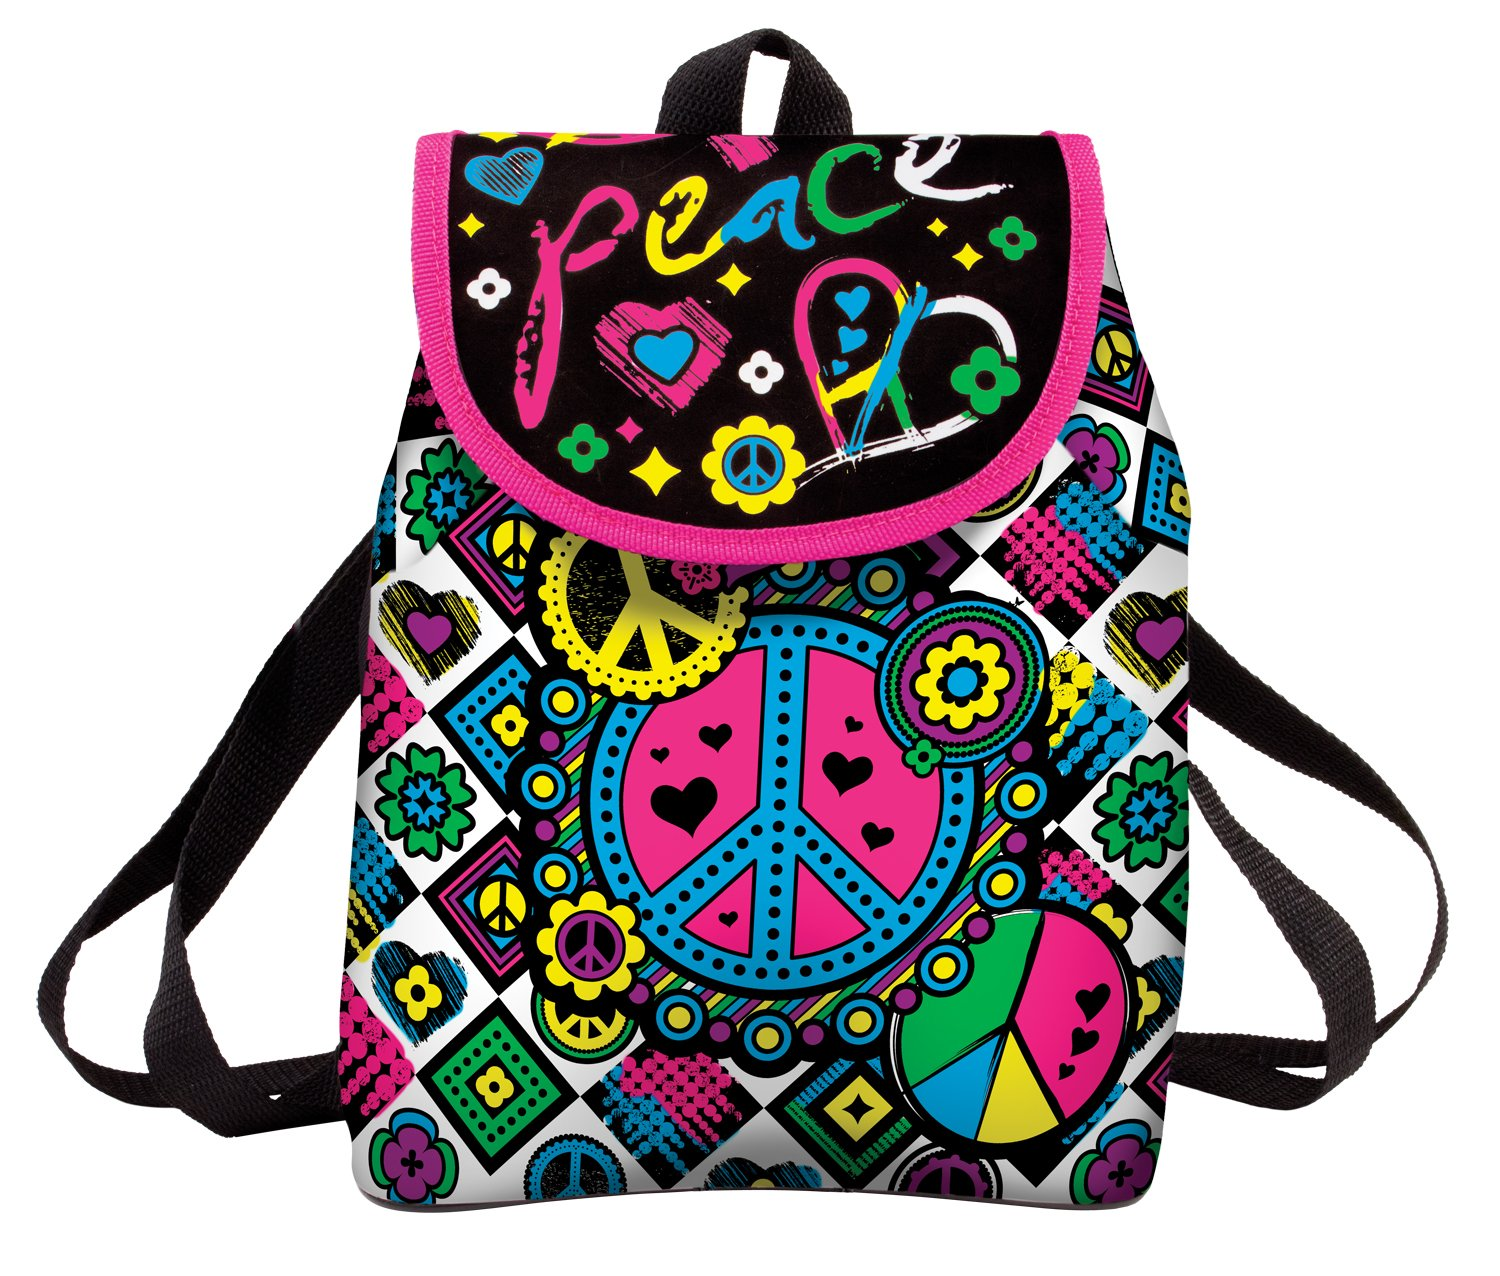 CRA-Z-ART Shimmer N Sparkle Color Your Own Backpack Cra Z Art 17081